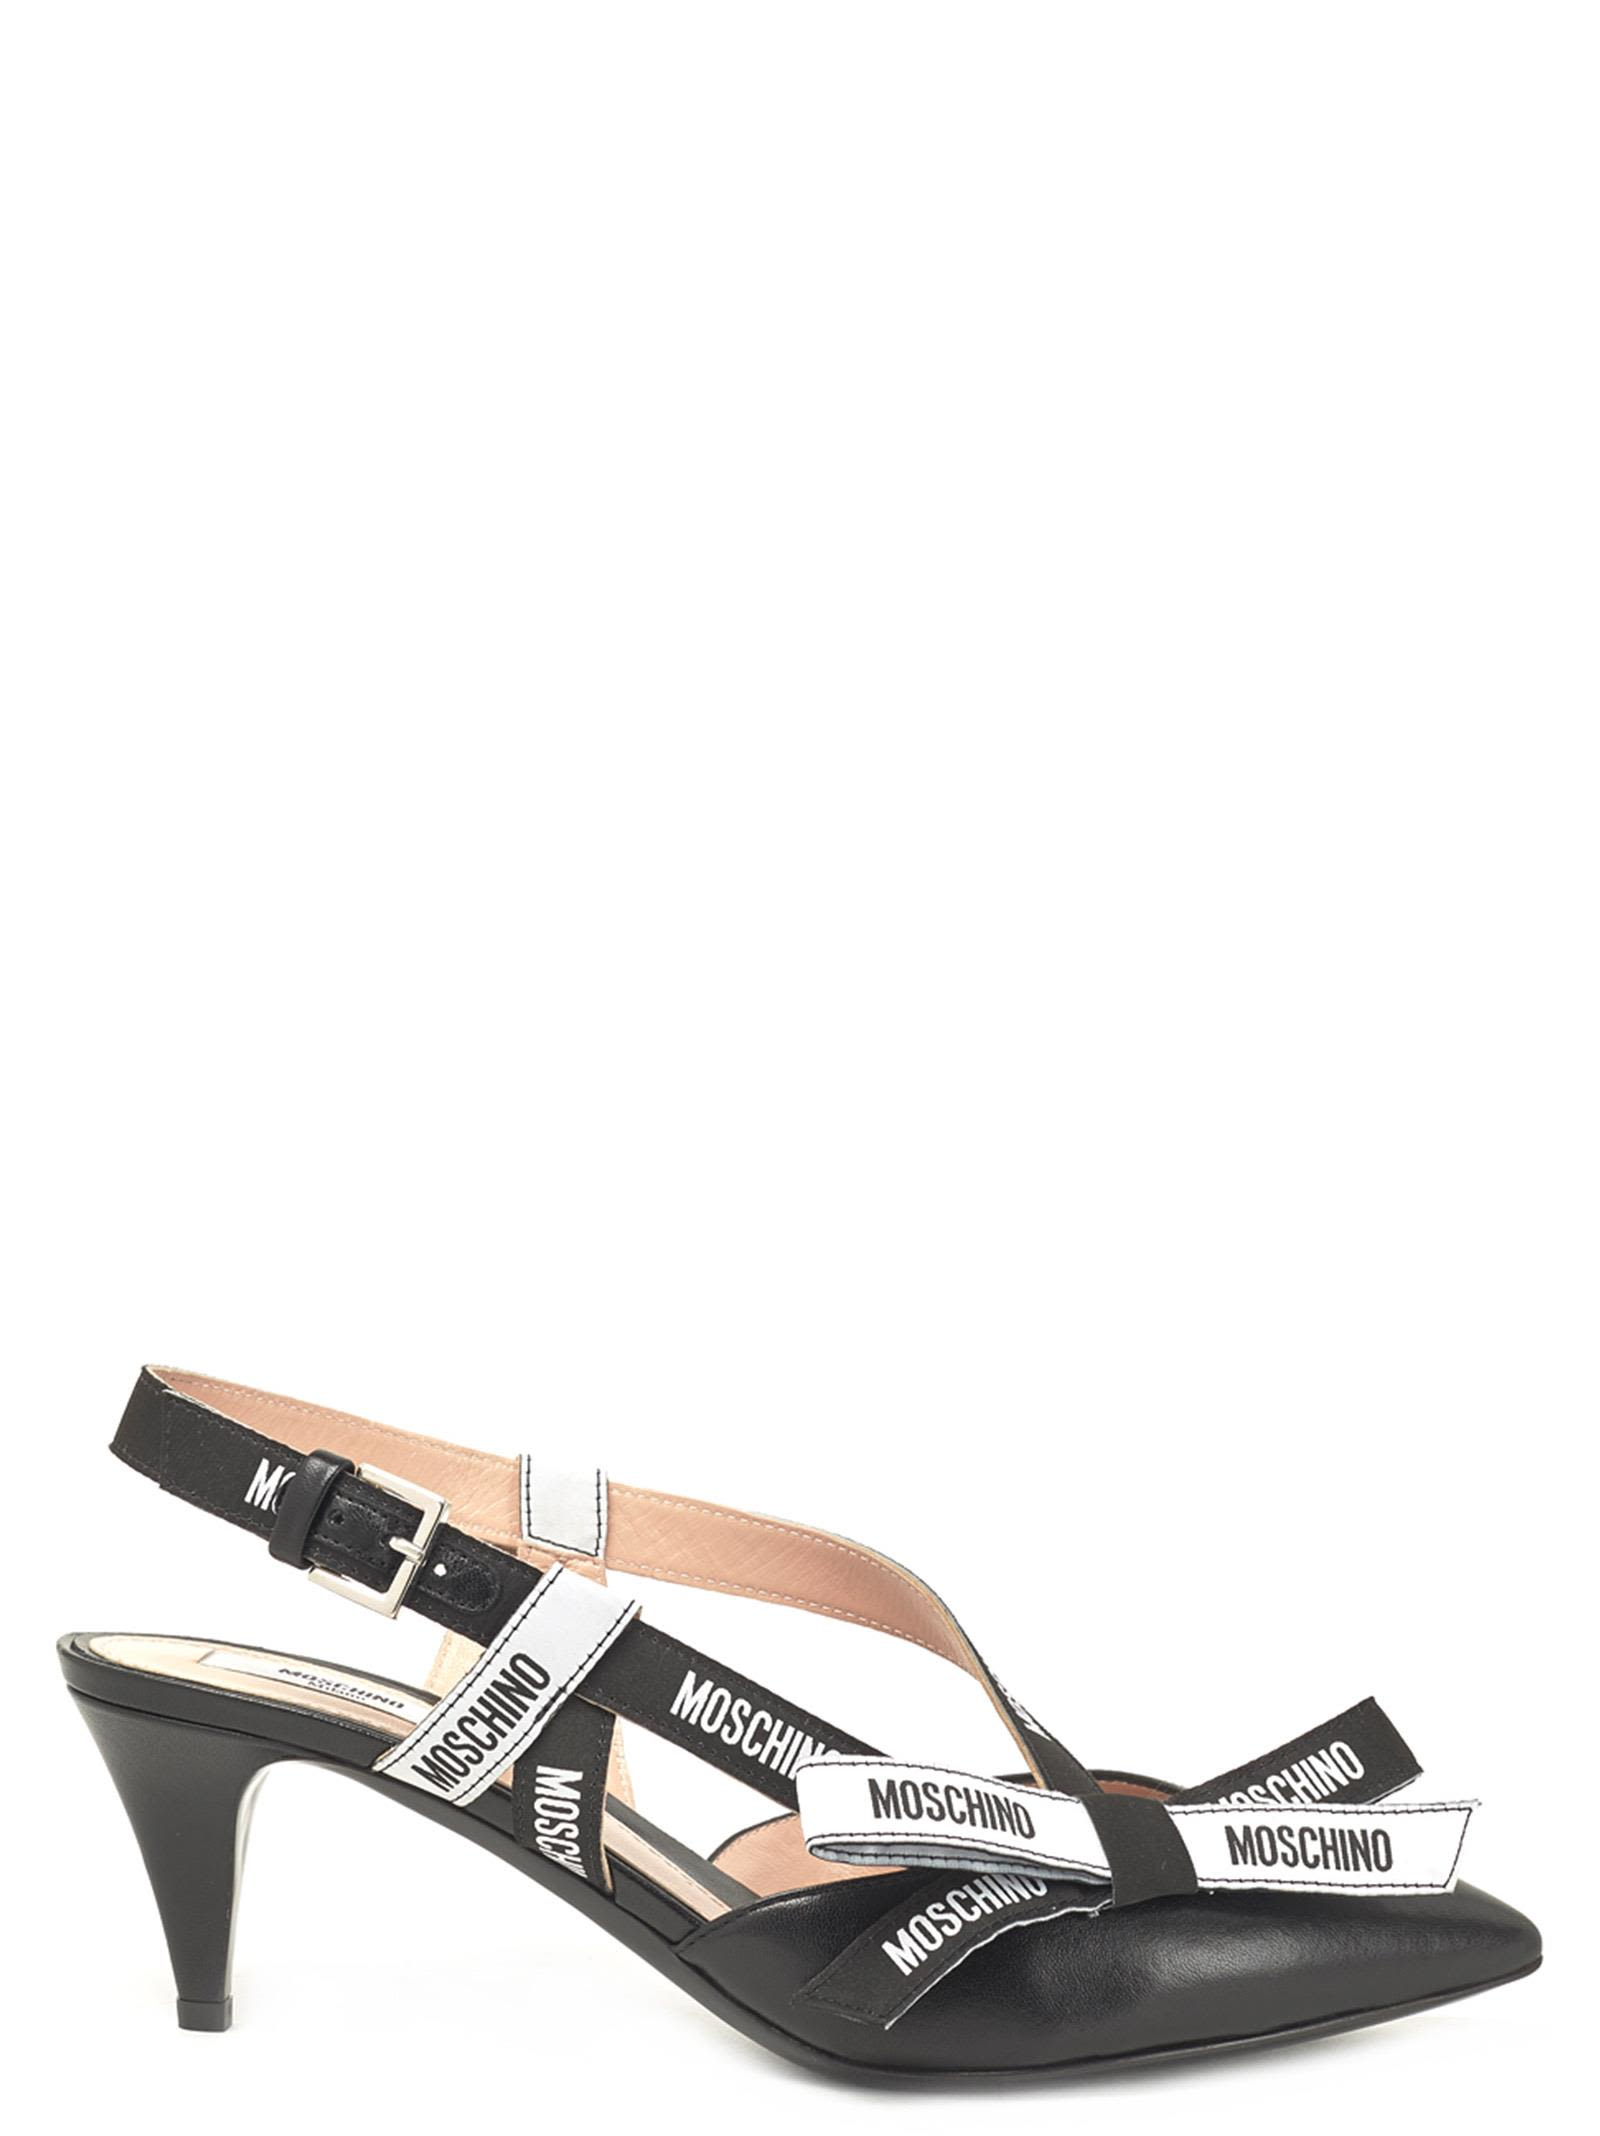 fe7d3ac3c74 italist   Best price in the market for Moschino Moschino Shoes ...